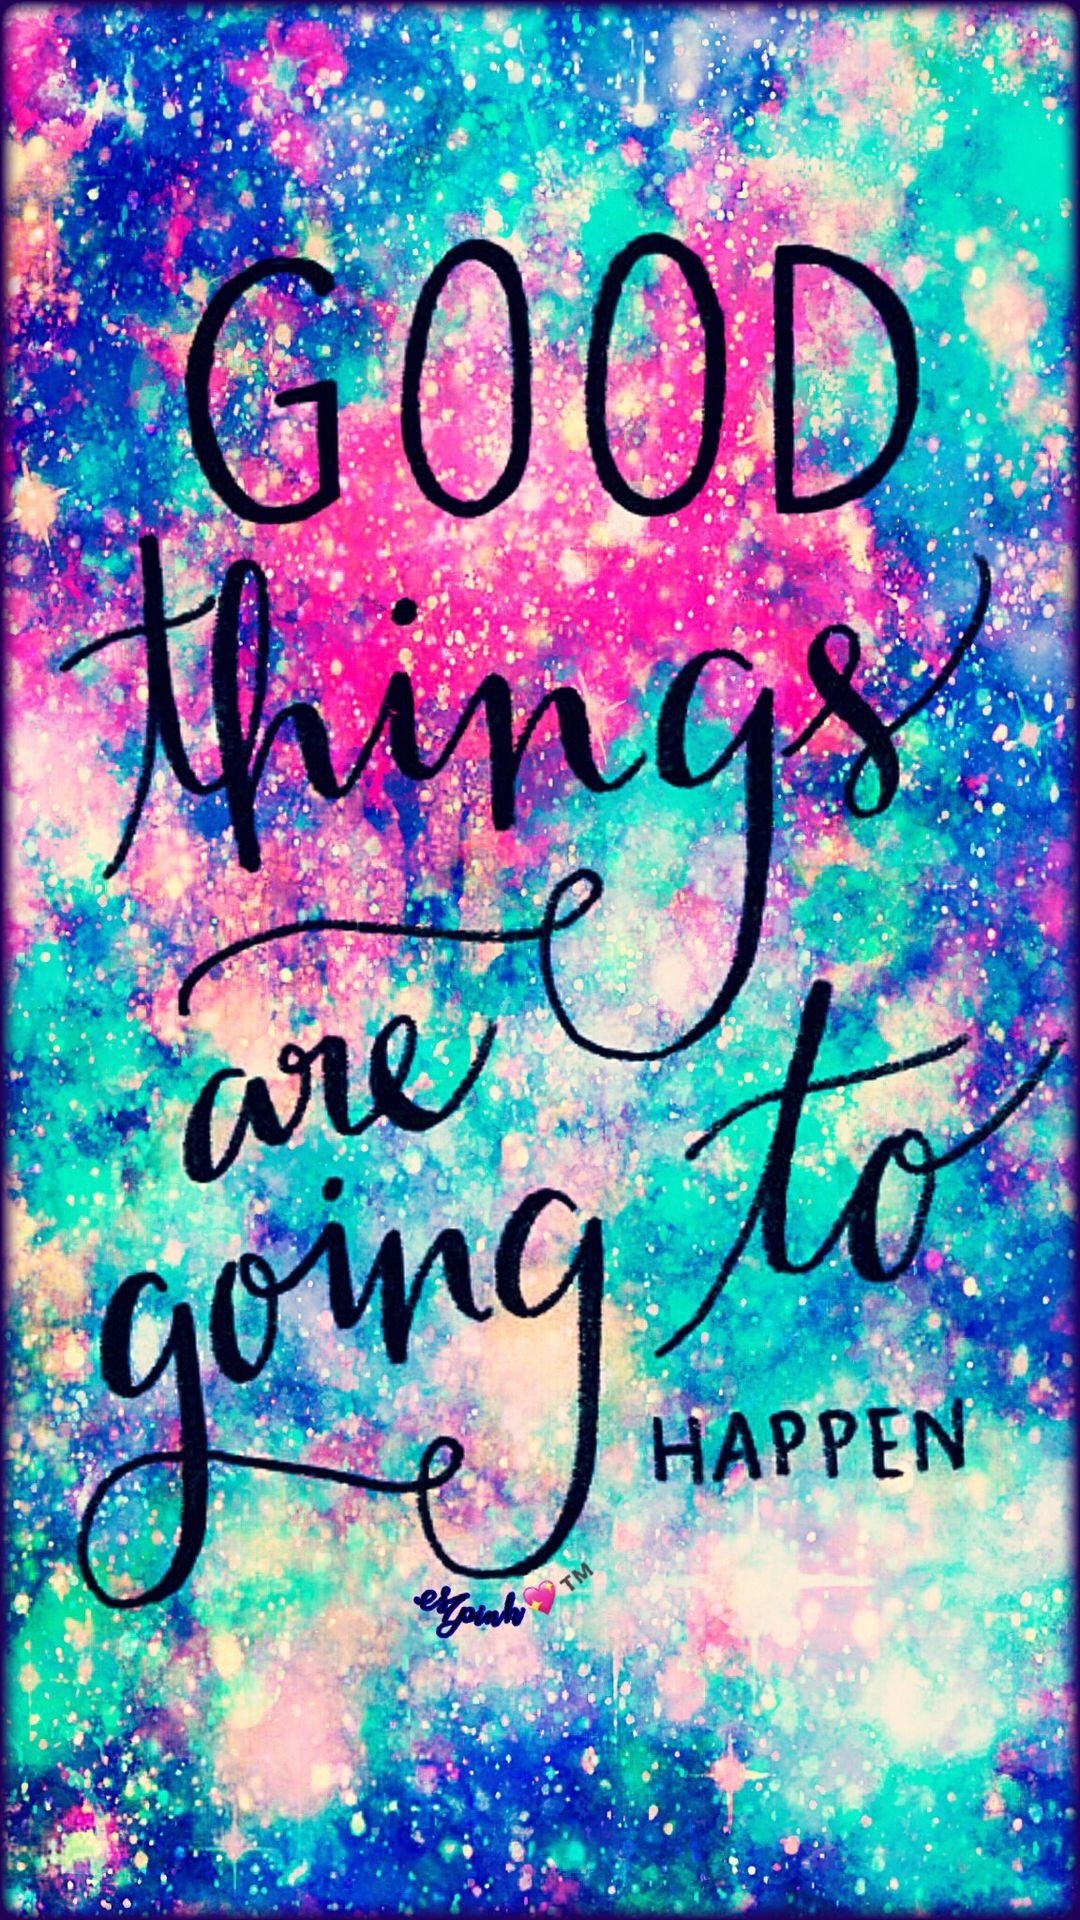 Res: 1080x1920, Good Things Are Going To Happen Galaxy Wallpaper #androidwallpaper  #iphonewallpaper #wallpaper #galaxy